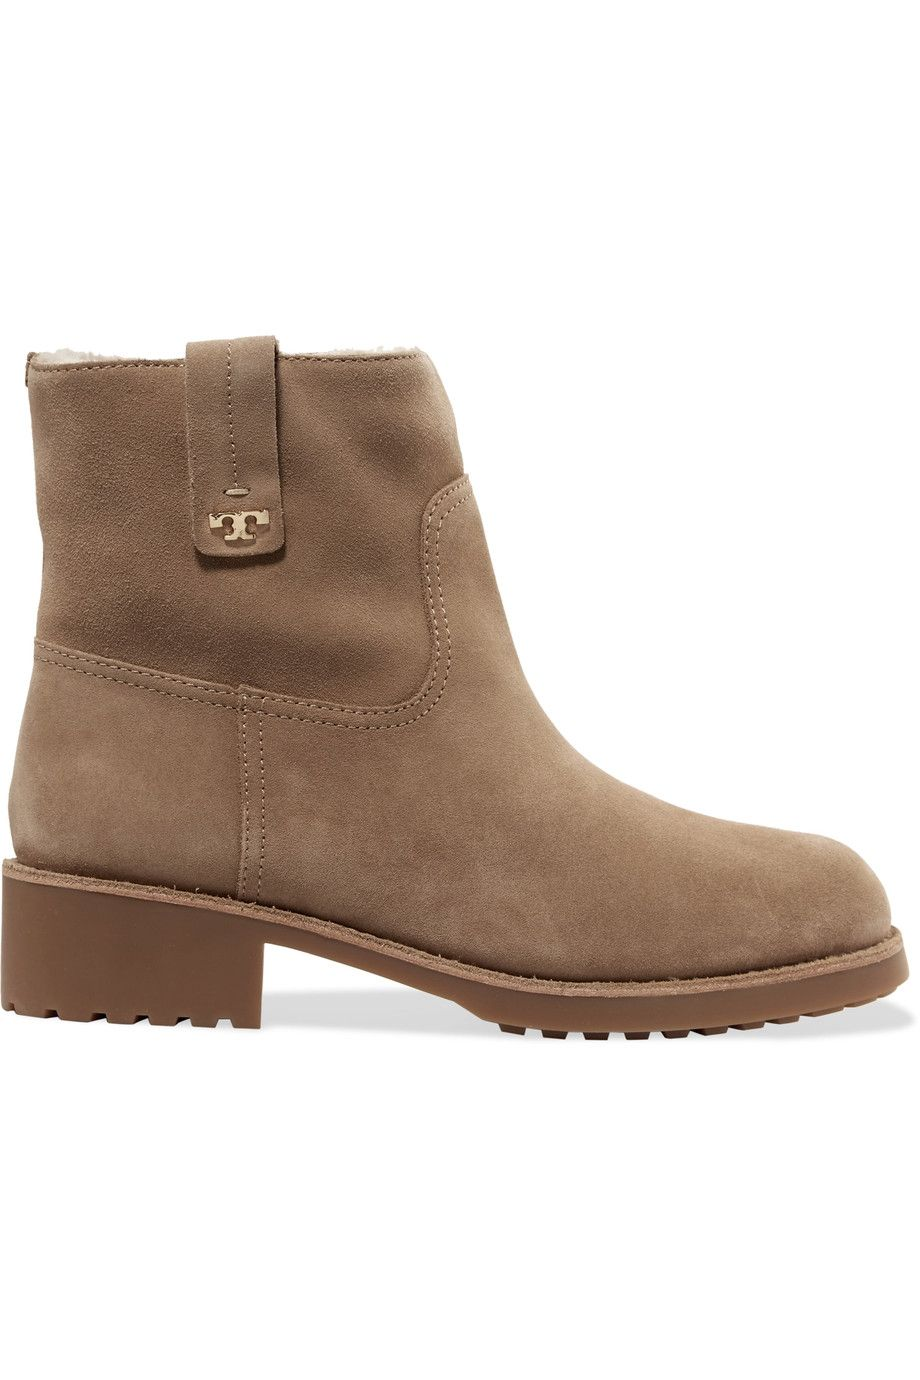 1bbdc9c9cc7dc TORY BURCH Wayland shearling-lined nubuck ankle boots.  toryburch  shoes   boots